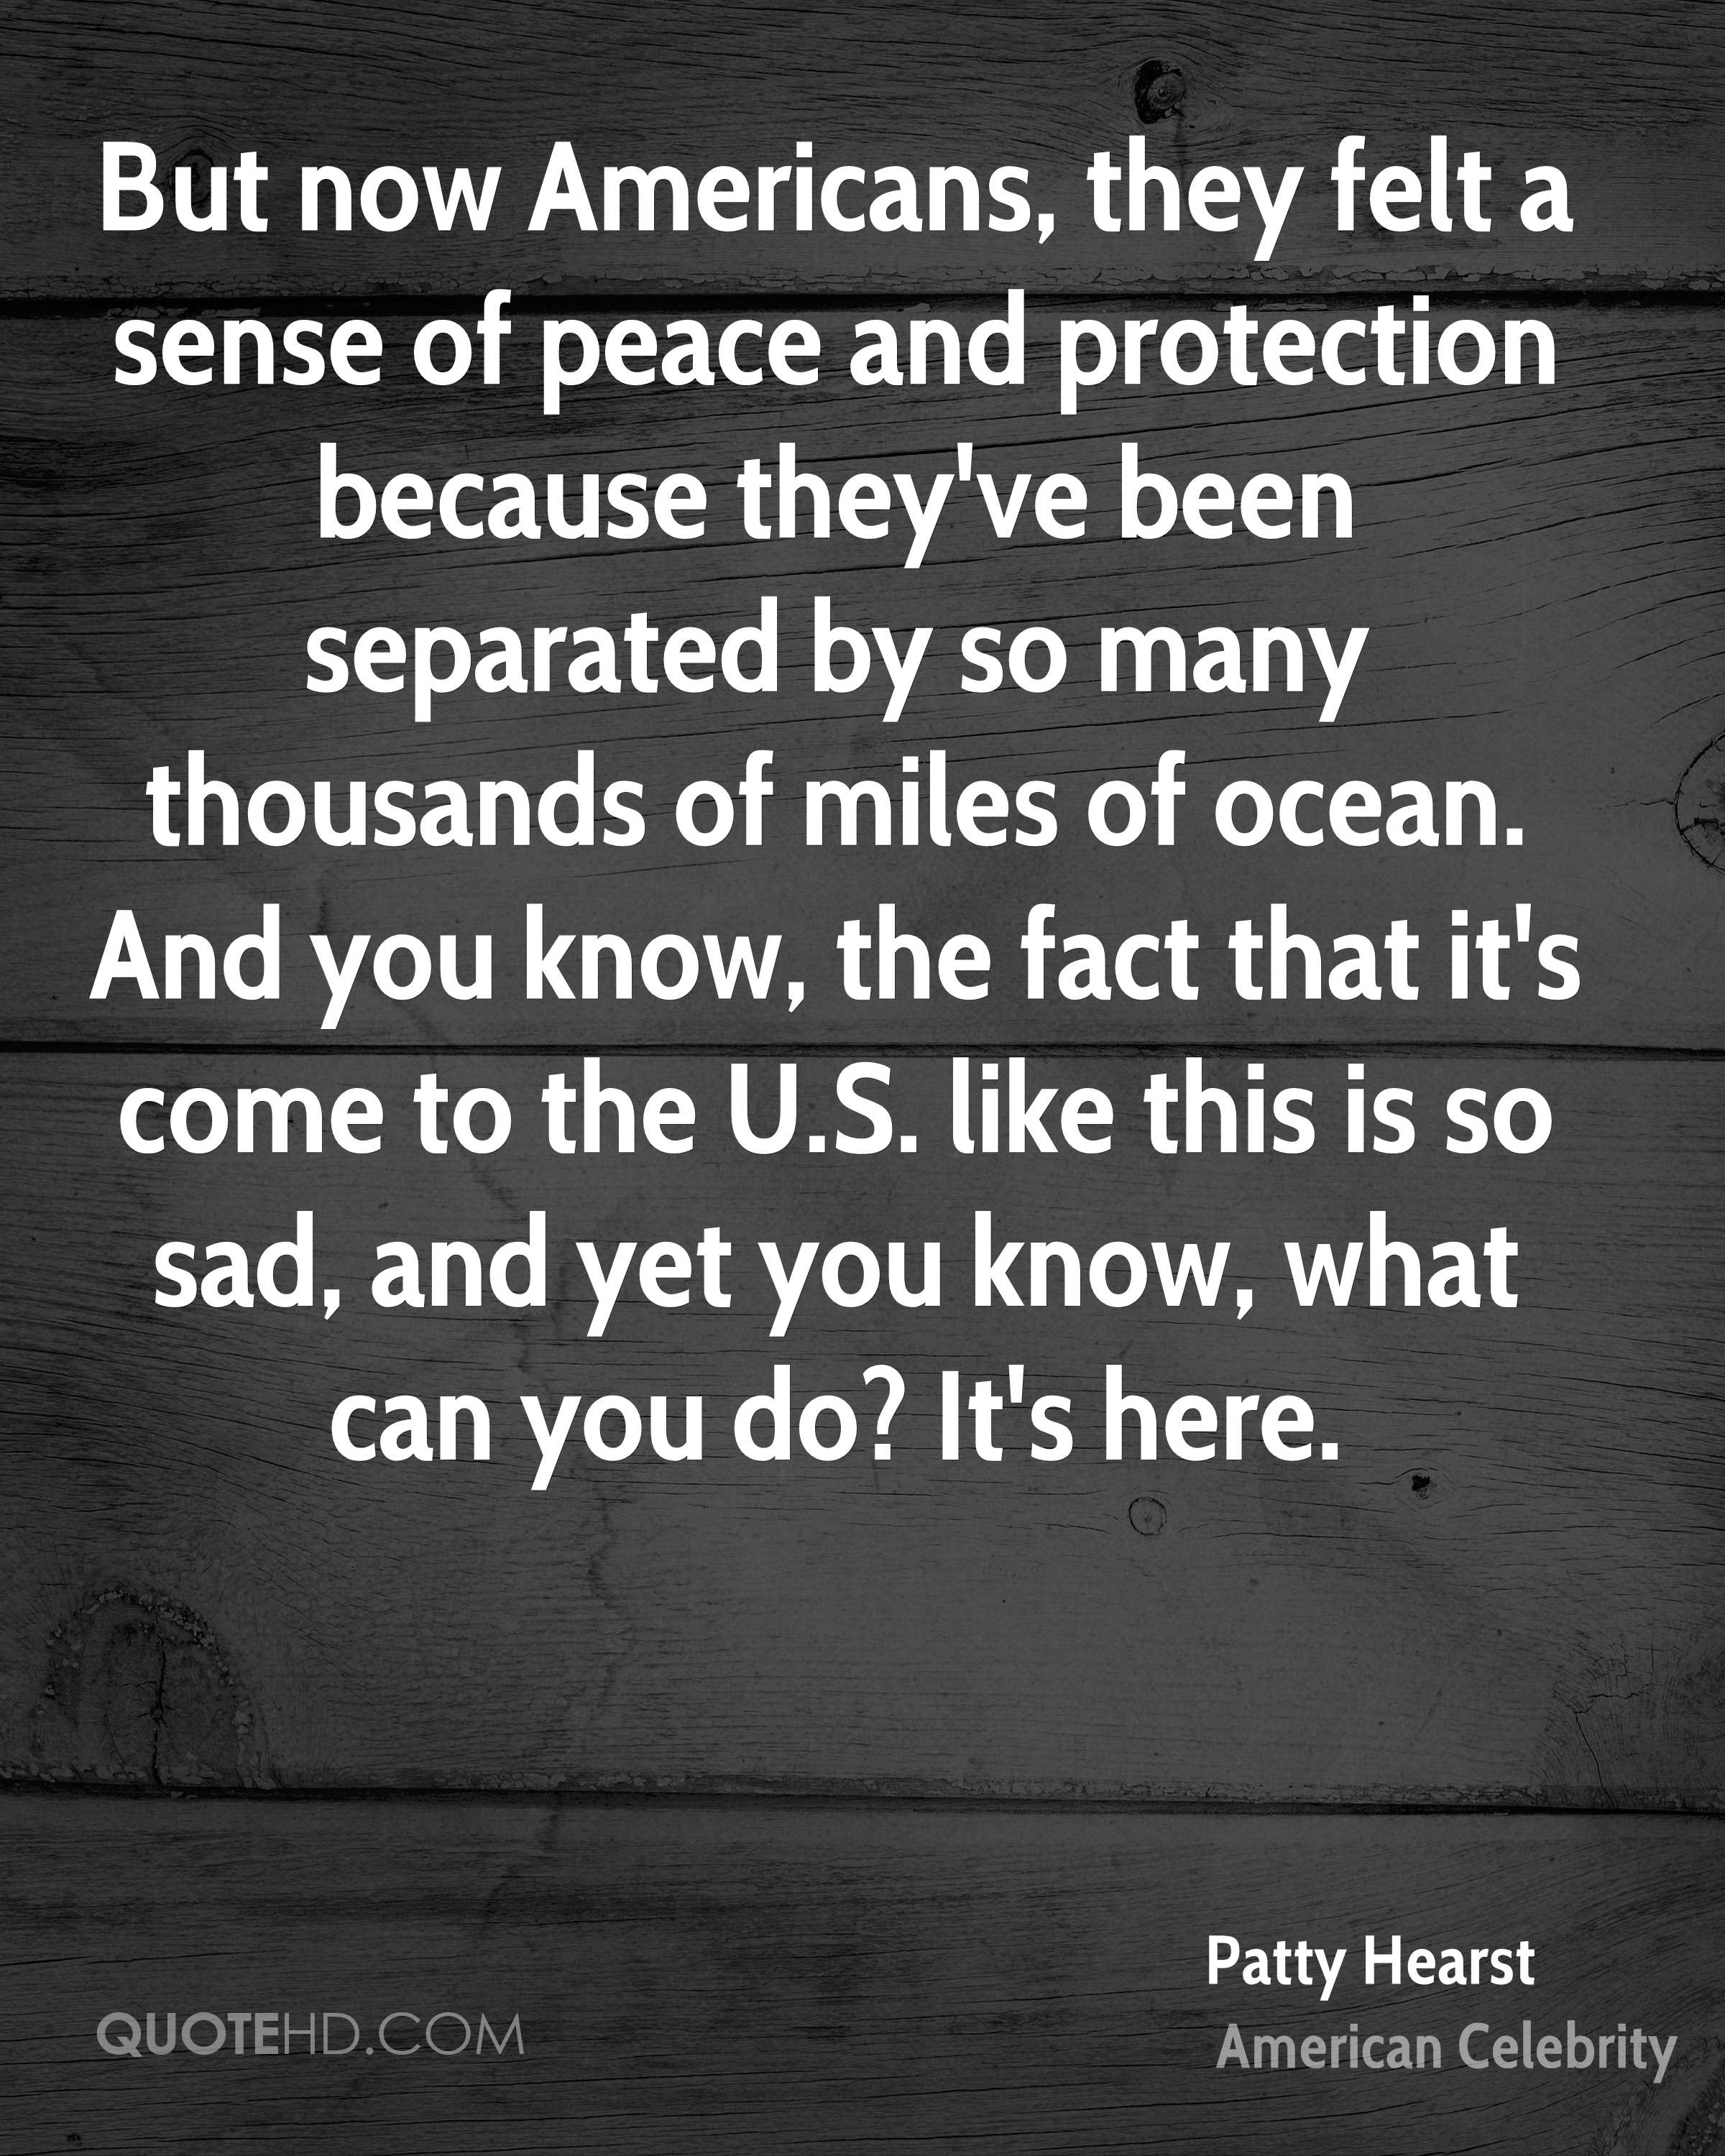 But now Americans, they felt a sense of peace and protection because they've been separated by so many thousands of miles of ocean. And you know, the fact that it's come to the U.S. like this is so sad, and yet you know, what can you do? It's here.